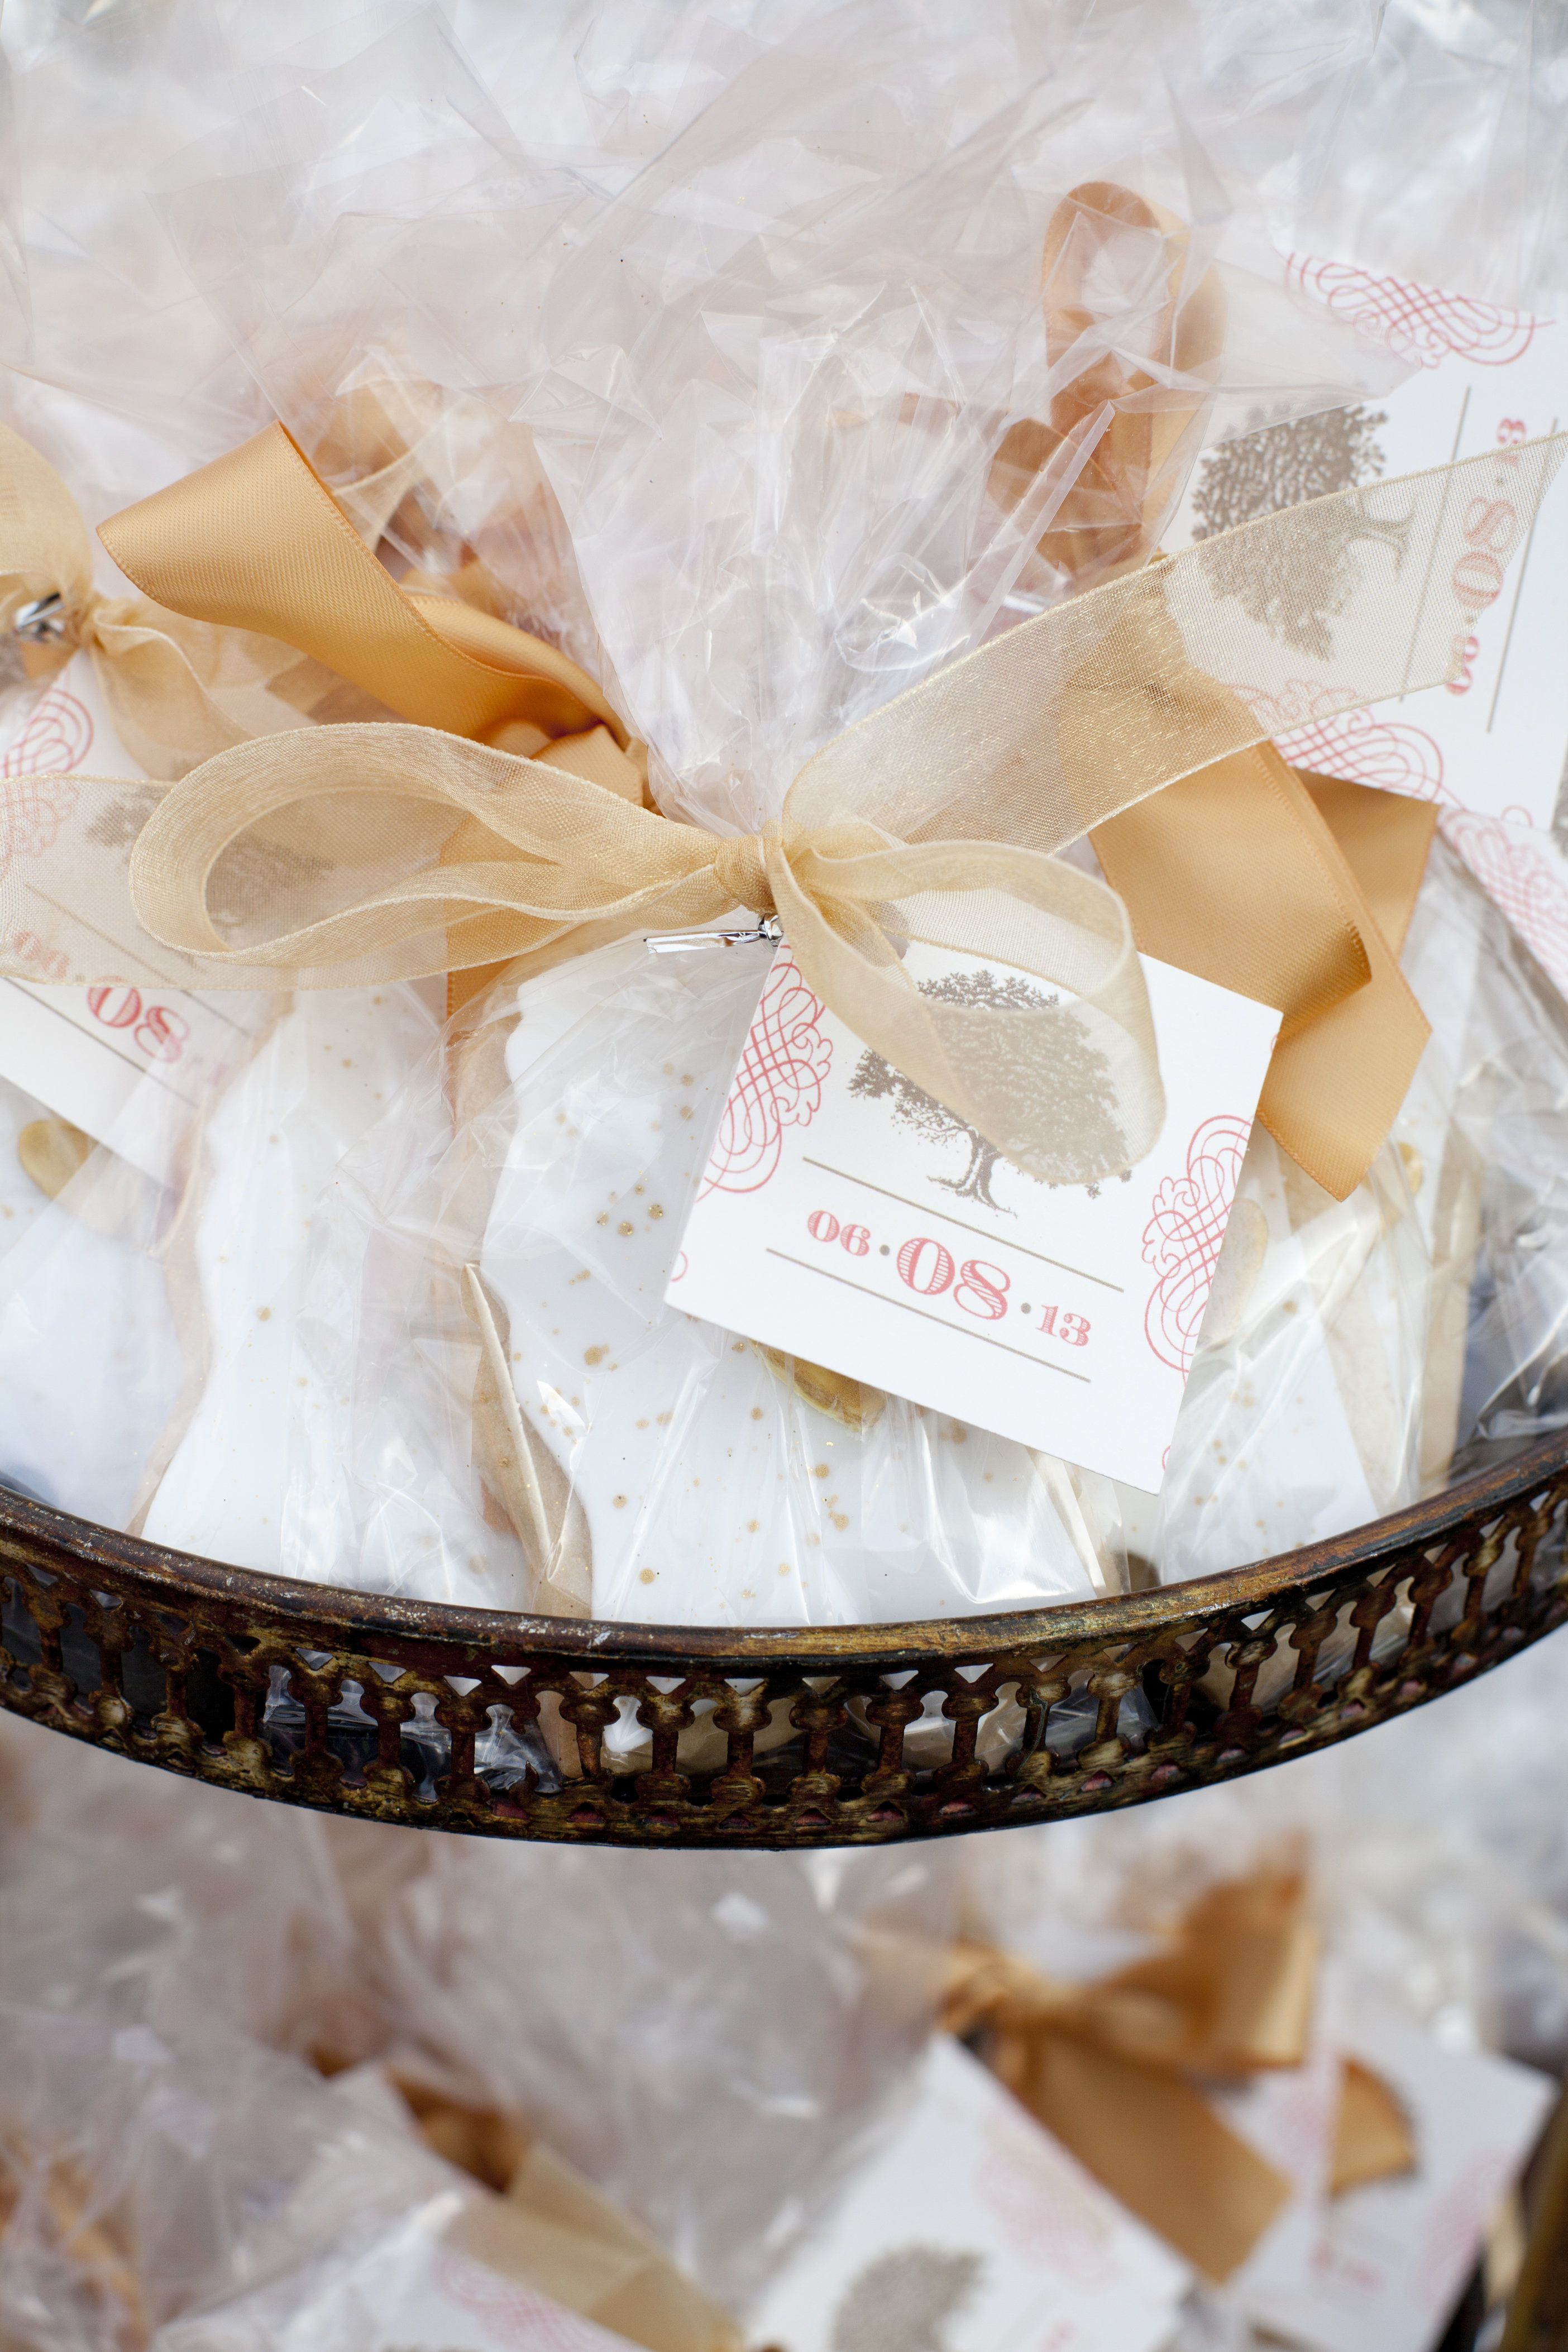 Charming Outdoor Southern Wedding | Southern weddings, Cookie ...